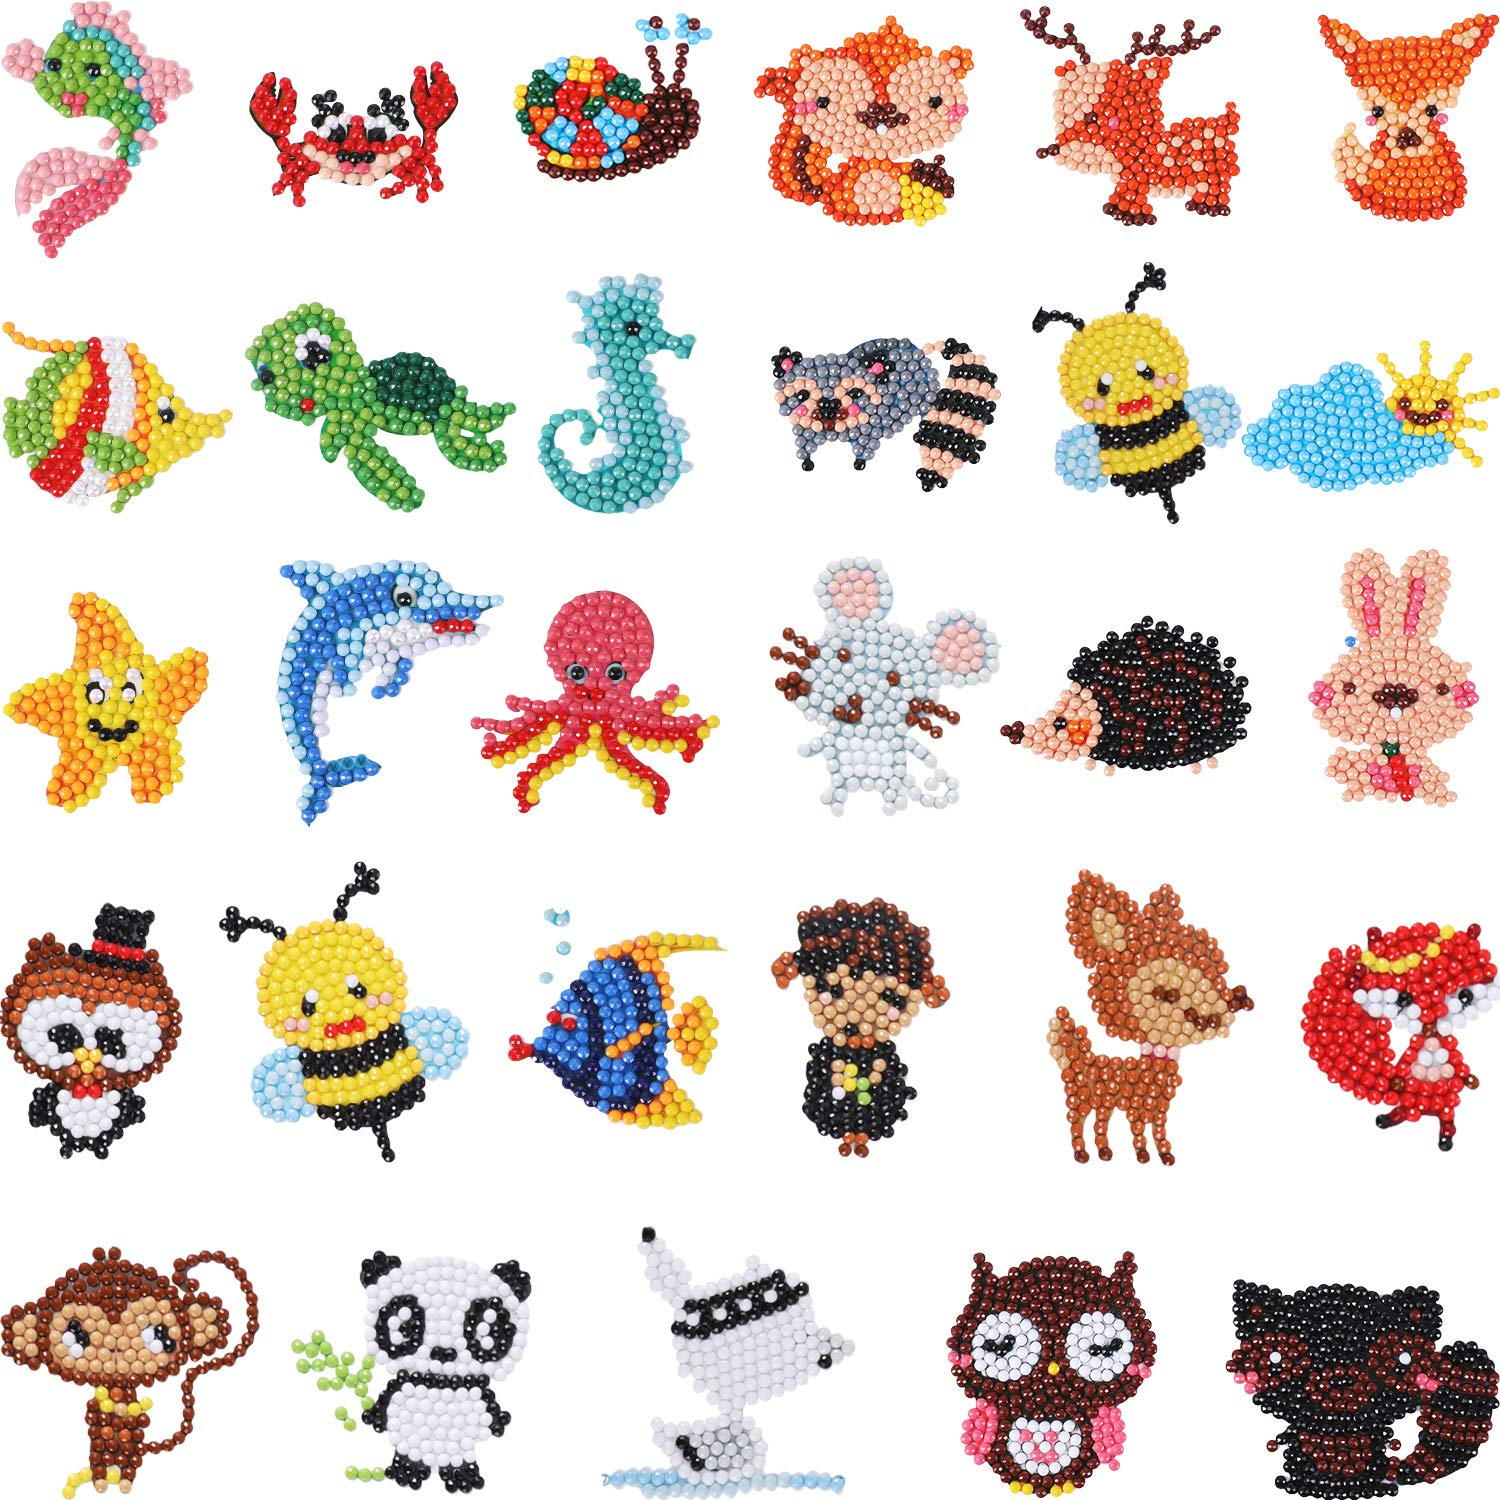 29 Pieces Diamond Painting Kids 5D Diamond Stickers DIY Diamond Painting Kits Animal Painting with Diamonds for Adult Beginners by Chinco